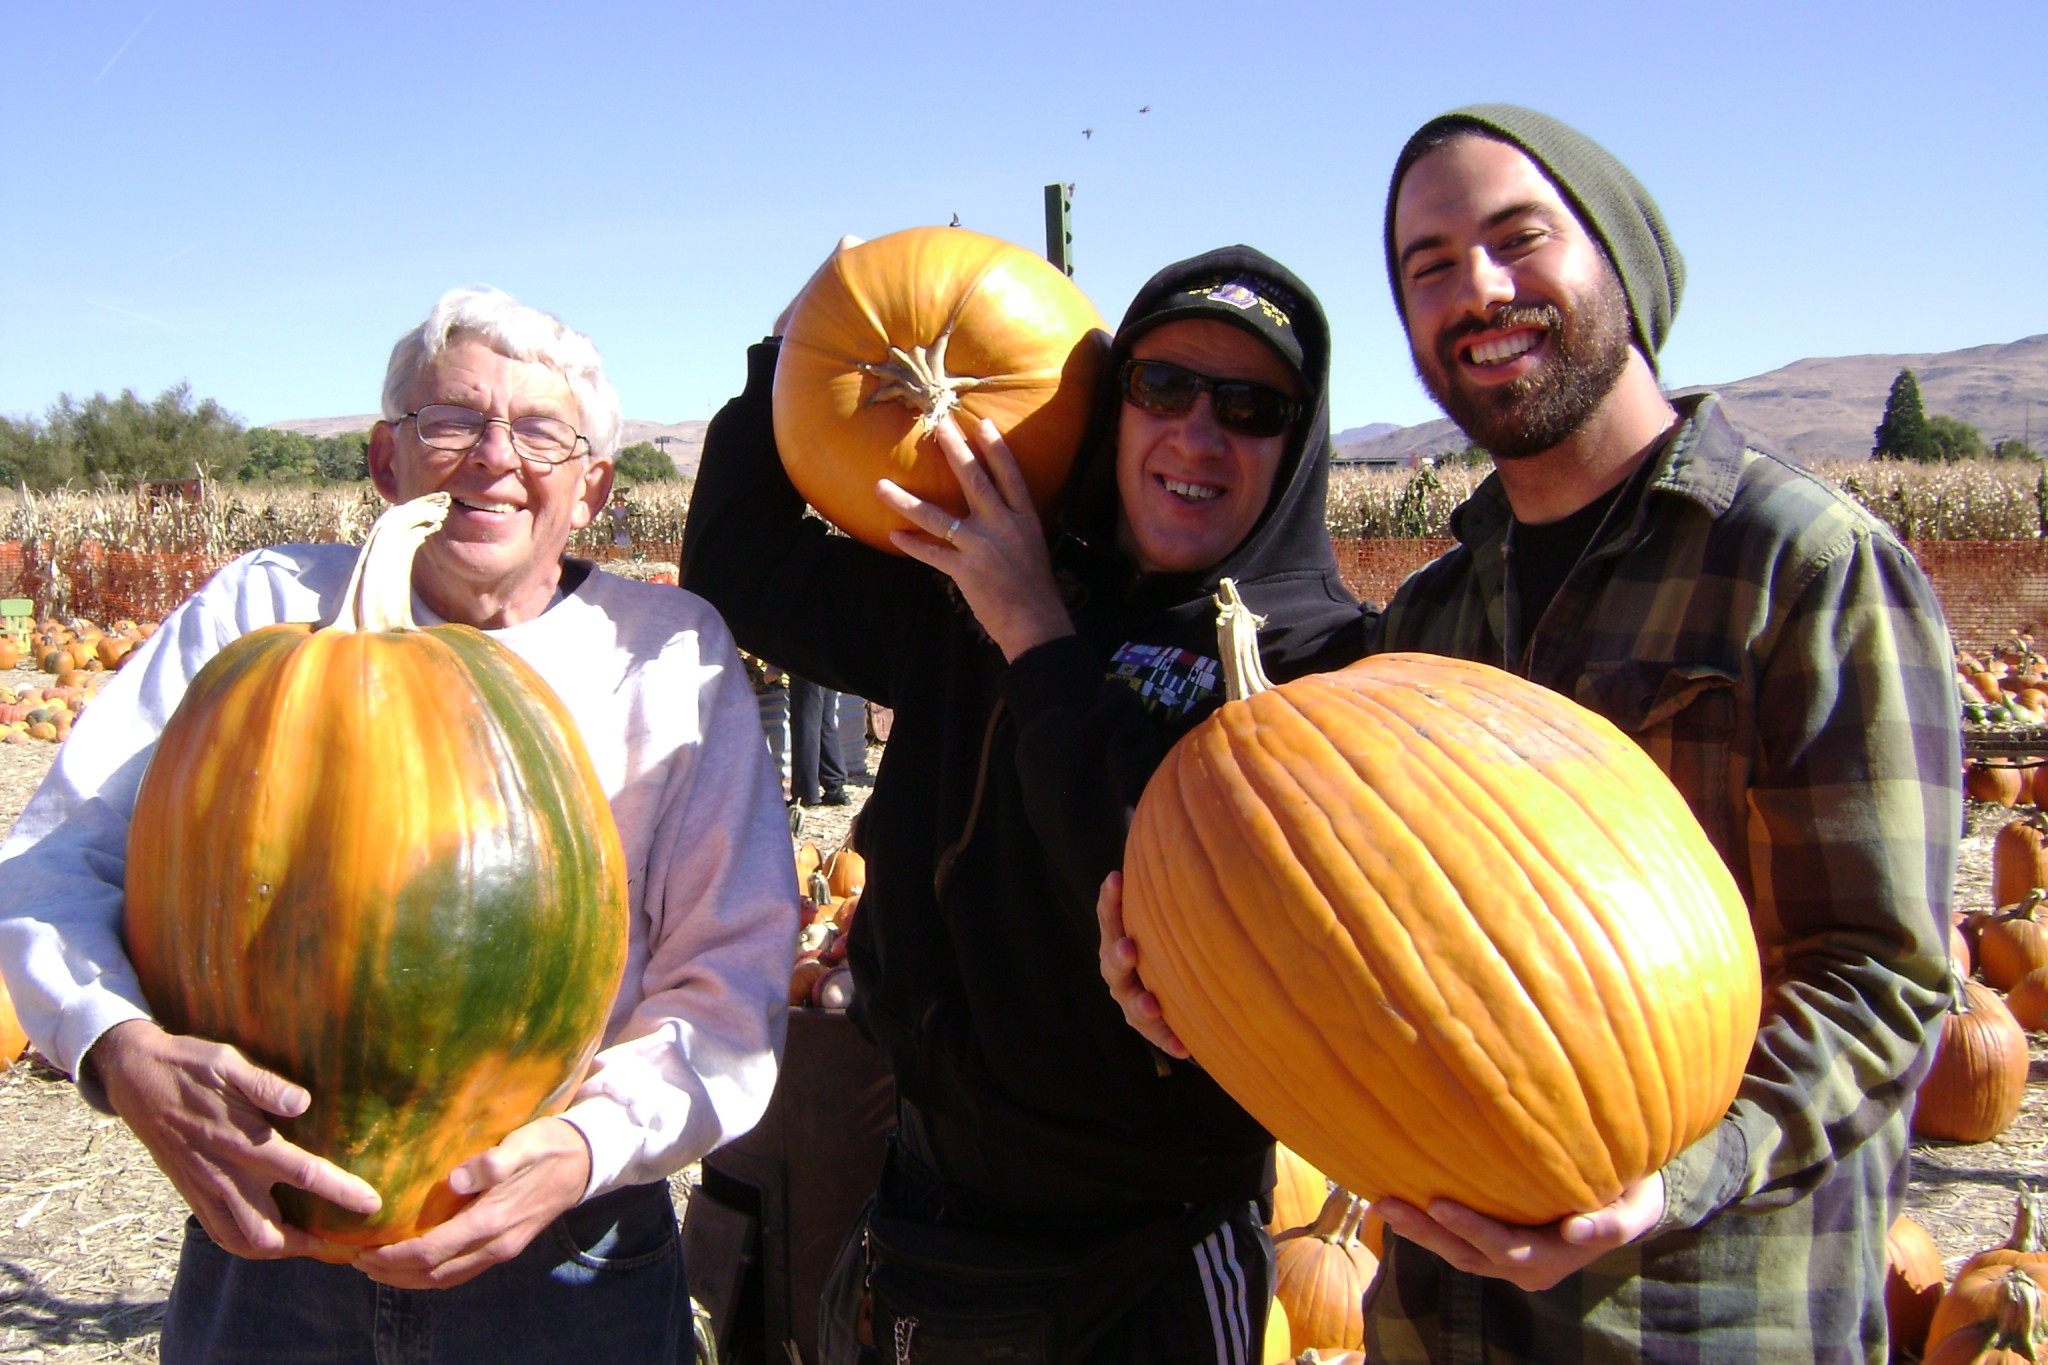 Jack Lee and Brandon with Pumpkins